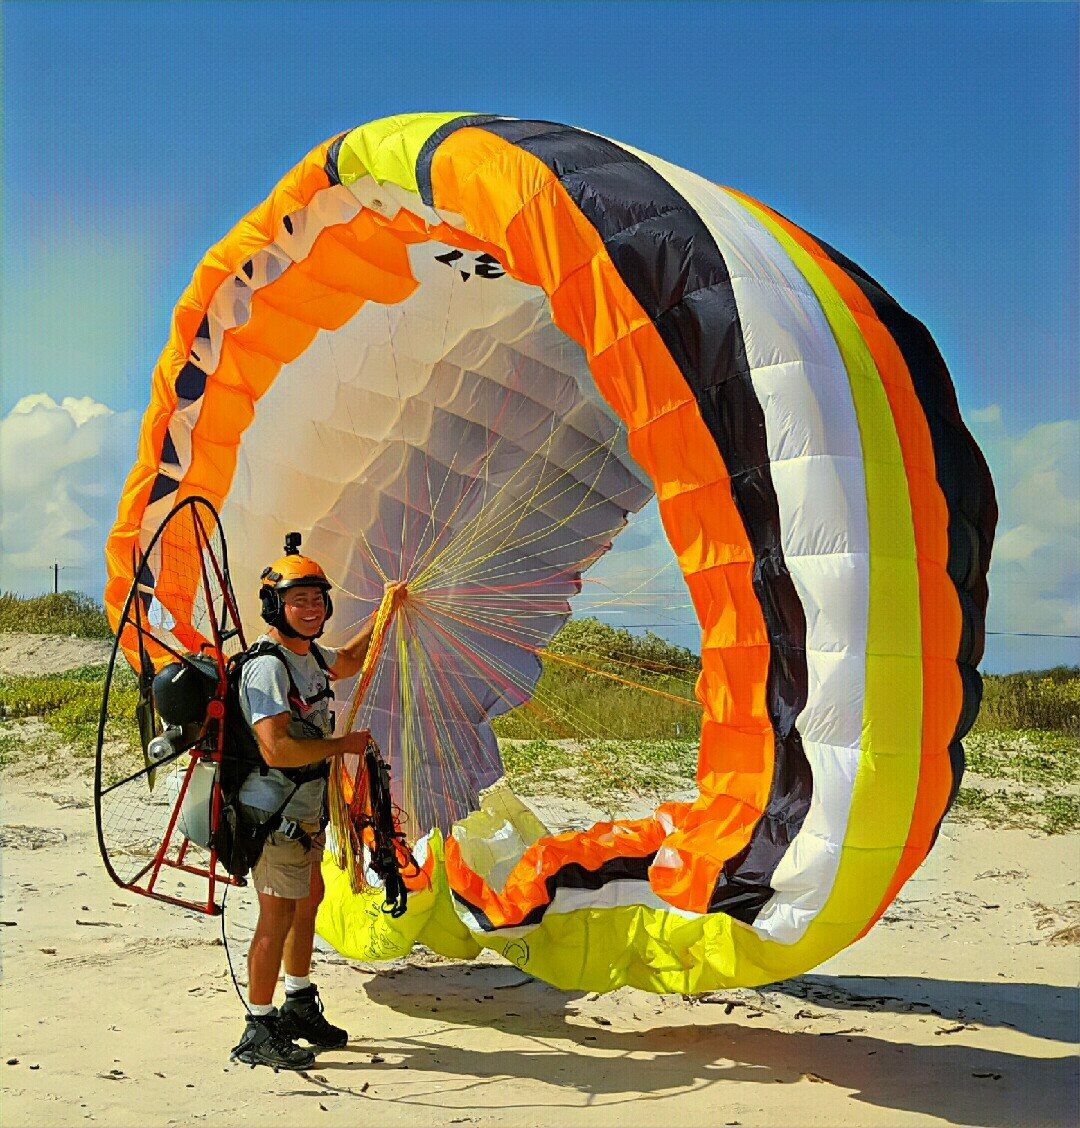 Don Brock - Welcome to the Texas Wind Riders, my name is Donald Brock and I am your local DFW Instructor for Powered Paragliding (PPG)since 2004. I have always been interested in flying and the thought of jumping out of a perfectly good aircraft has always appealed to me, so I did what came natural, I joined the US Army!I couldn't become a Pilot because of my eyesight so I figured Infantry Airborne is the right direction for me, I loved being a Paratrooper, I served in 3 Parachute Infantry Regiments. As a Staff Sergeant I was tasked with many dangerous missions and to accomplish them I had to first lead by example and become a good teacher, I taught many things from small arms weaponry, explosives, hand to hand combat and how to jump out of all sorts of aircraft, I loved my job.After getting hurt in combat I left the Army, I felt a bit lost and out of place, I needed to feel like SSG Brock again so as luck would have it, I spotted something in the air one day in Fort Worth, it was familiar but it wasn't, I saw a canopy and thought it was a skydiver, but I was wrong, it was a PPG Instructor by the name of Didier Debaque from Adventure France, I literally chased him down and asked him what that was? and how could I do it? it has been love ever since.My training started in April of 2004, I joined ASC (Aero Sports Connection) and received my Instructor Rating later that same year after 50 hours of flying and training students under the supervision of my Instructor. In 2006 I became a certified Instructor by Francesco (Check) De Santis through the USPPA, In 2017 I found myself being rated as an Administrator, Check was once more my Rater.I take great pride in my country and my military service, I bring that Army Airborne attitude and spirit to my training LZ where I strive to give you the best and safest training possible, every student trains at a different pace, and everyone has a different learning curve, so with that said, you are NOT forced into the air nor do you h